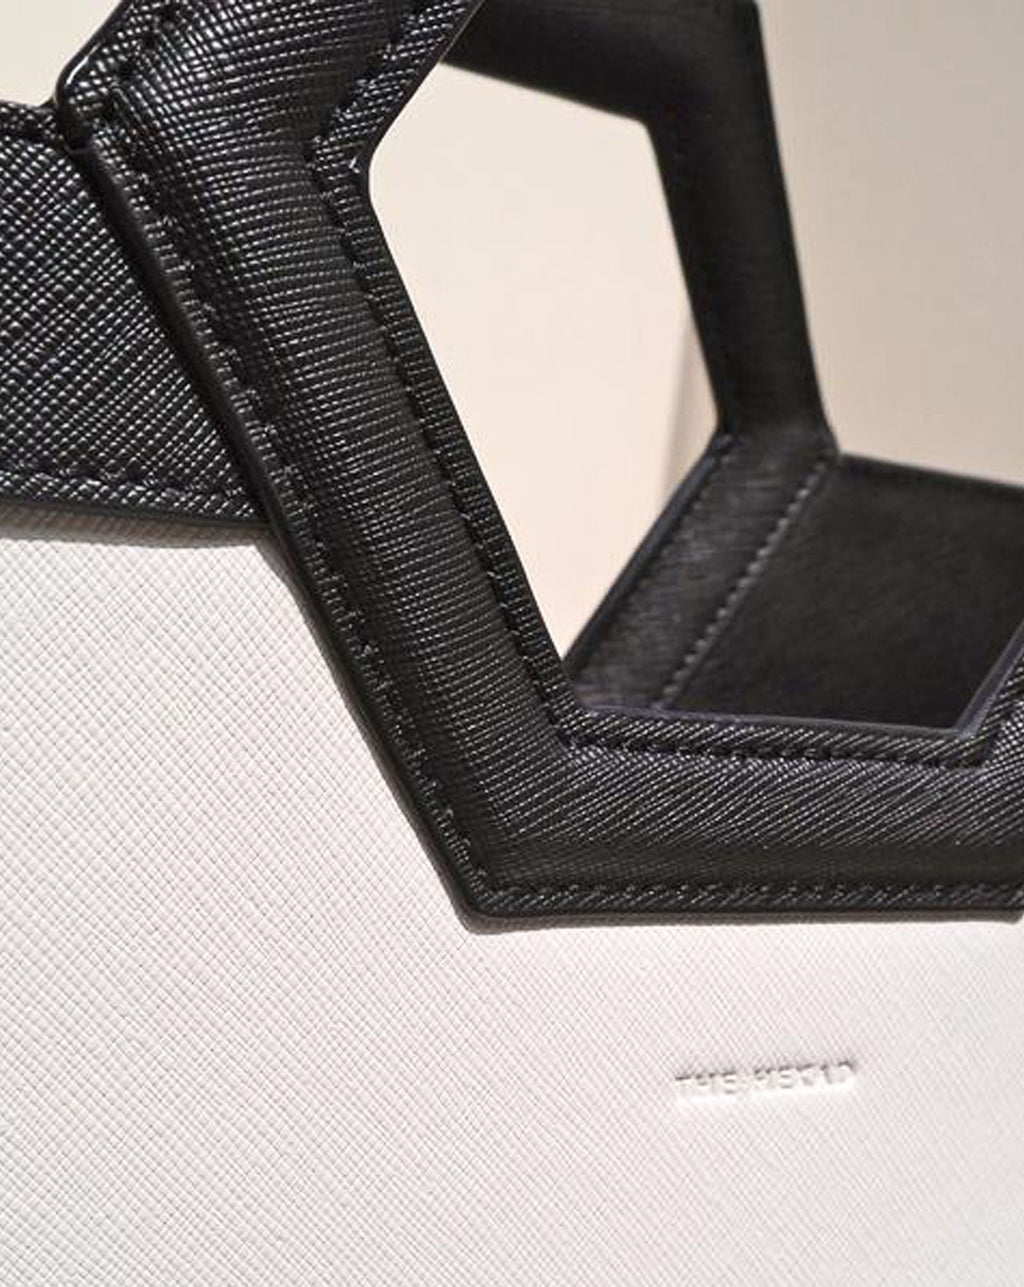 Close up details of the hexagonal shape handle of the AVA Tote Bag by The Hexad